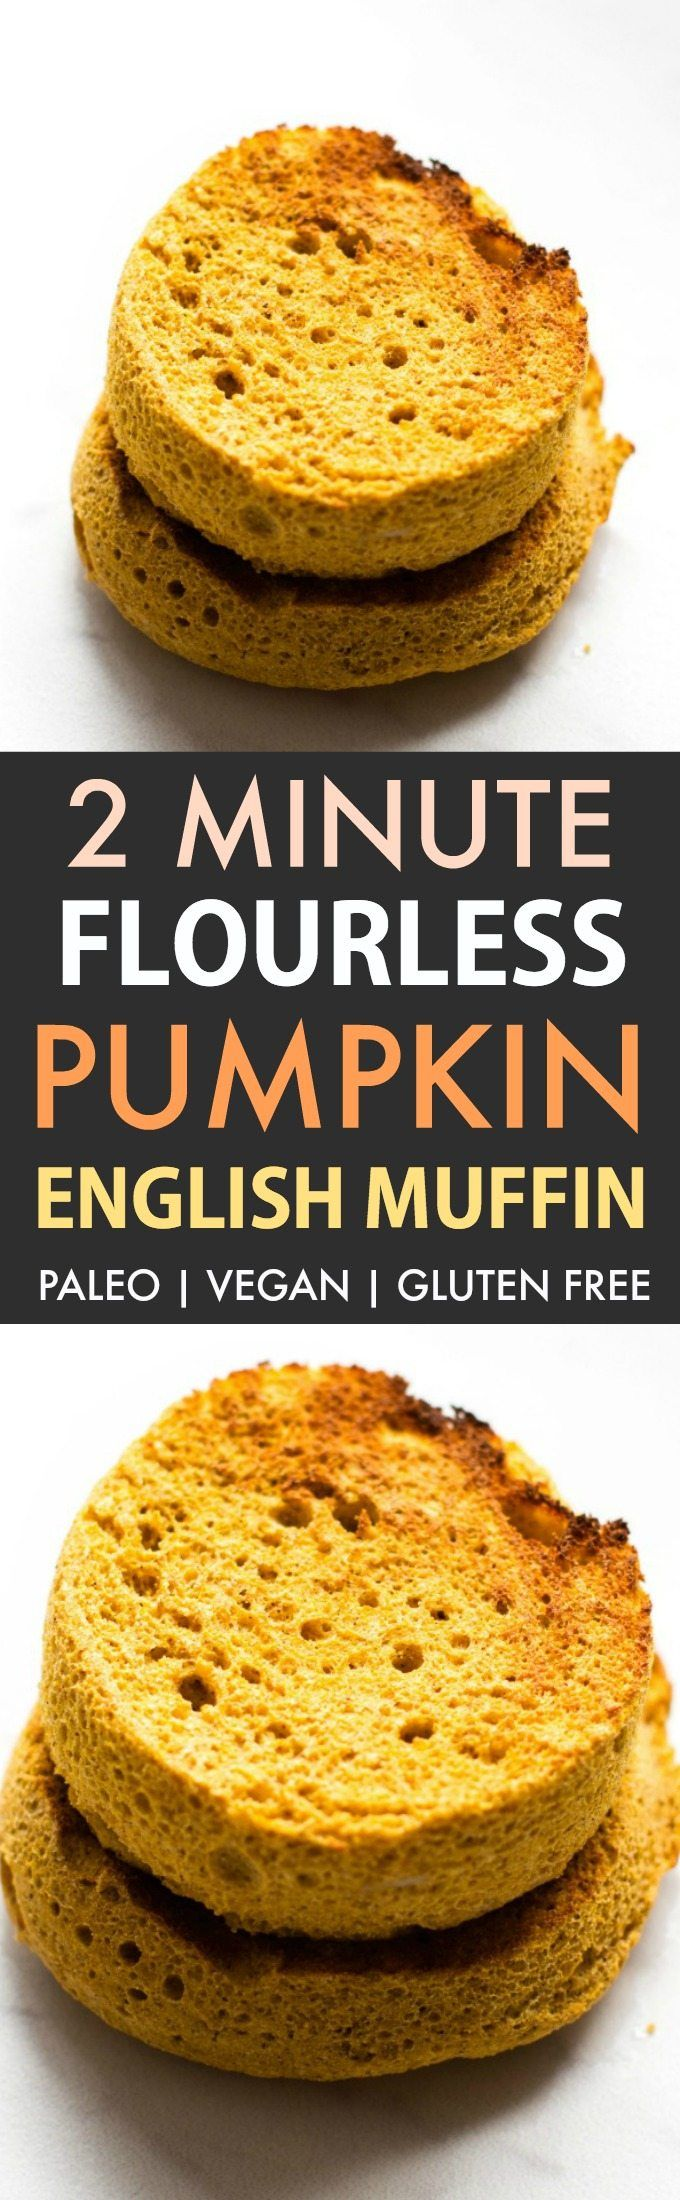 2 Minute Flourless Pumpkin English Muffin (Paleo, Vegan, Gluten Free)- Easy two minute English muffin recipe made with just four ingredients!